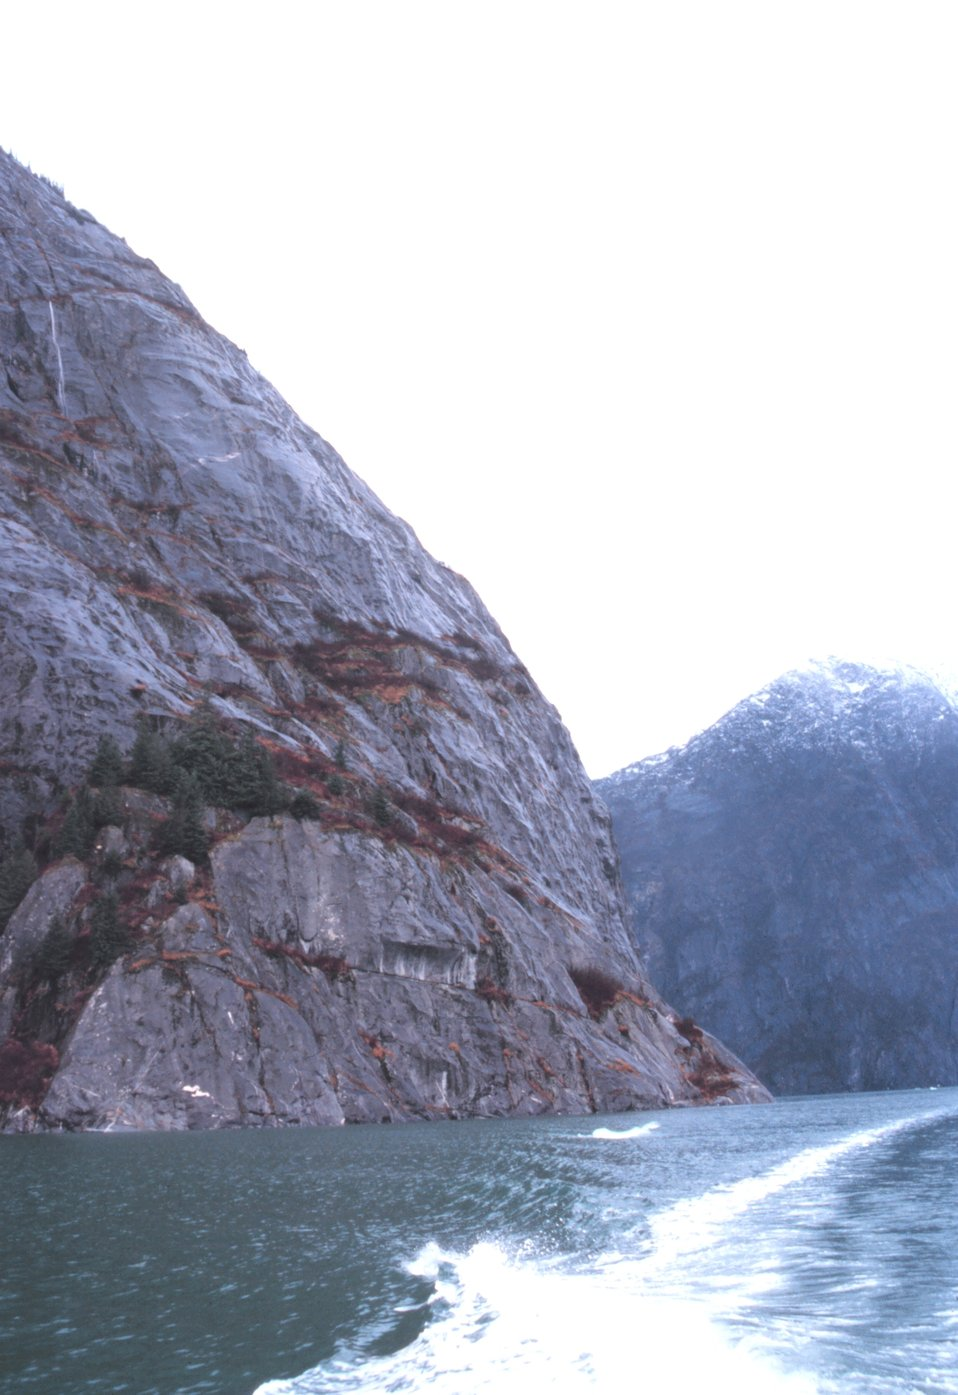 A wake disturbs the placid waters of Tracy Arm Fjord